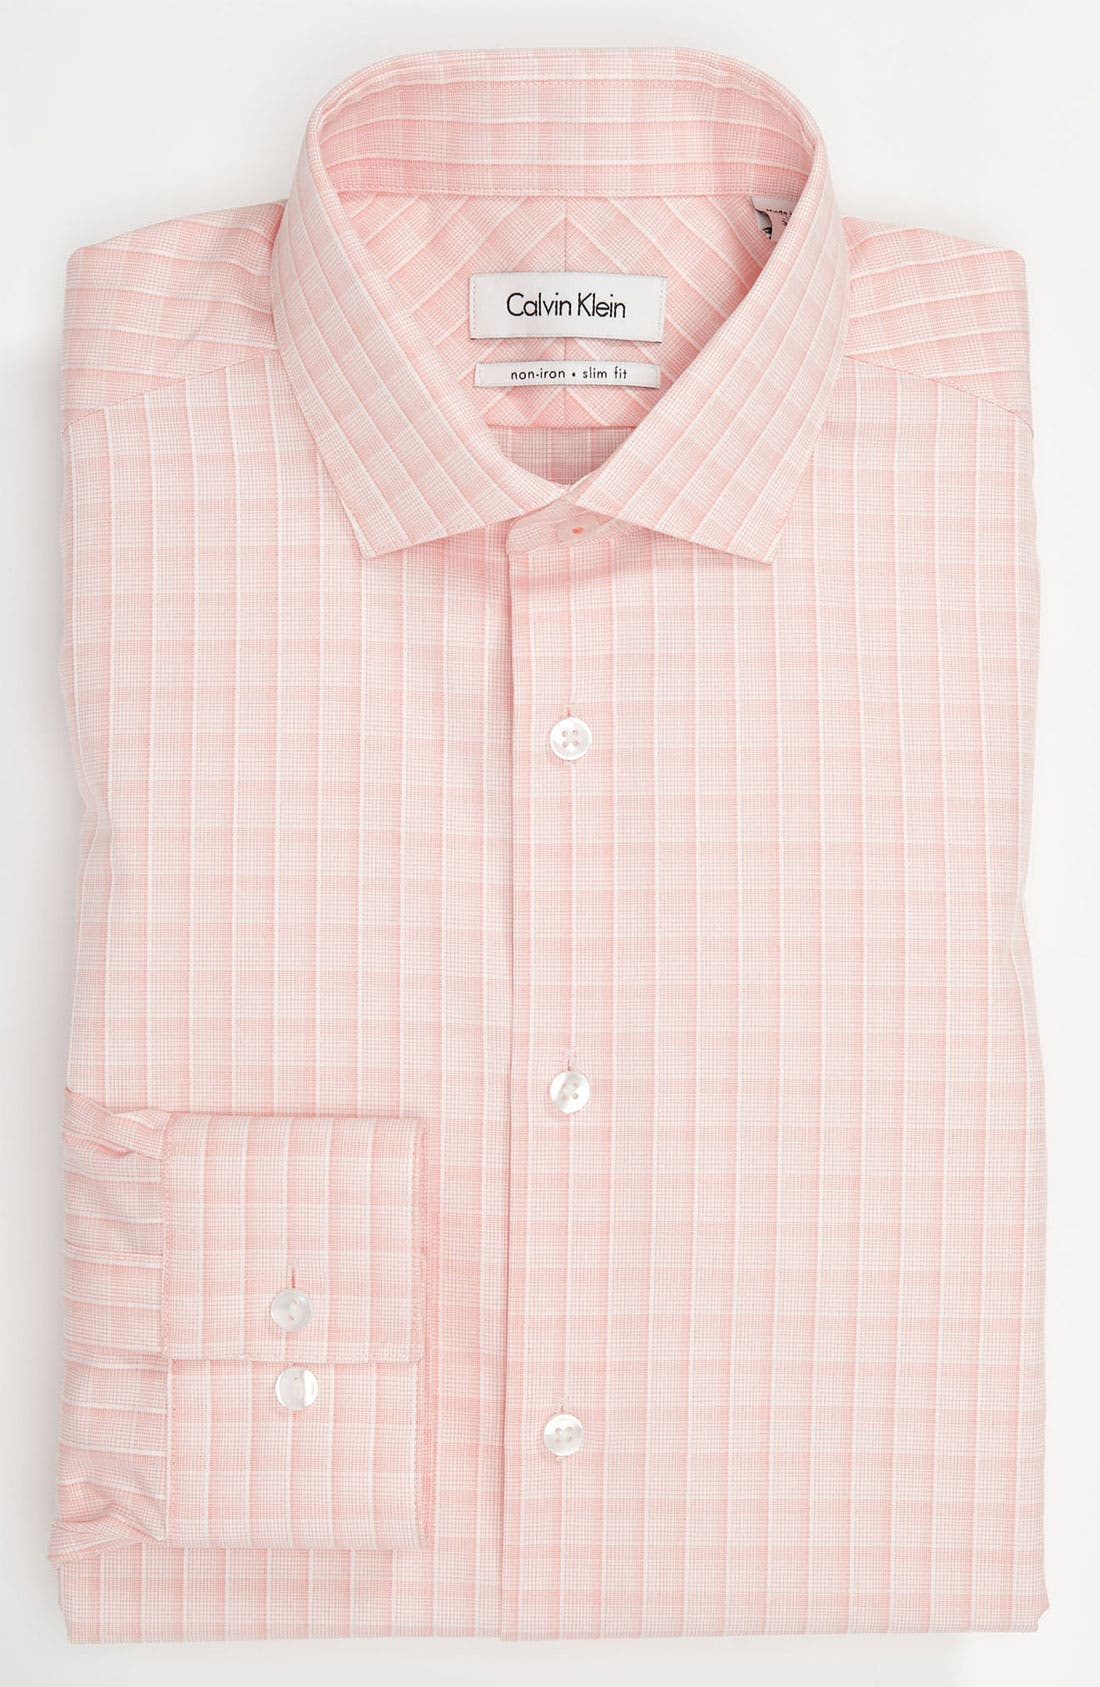 Main Image - Calvin Klein 'Montecarlo Check' Slim Fit Dress Shirt